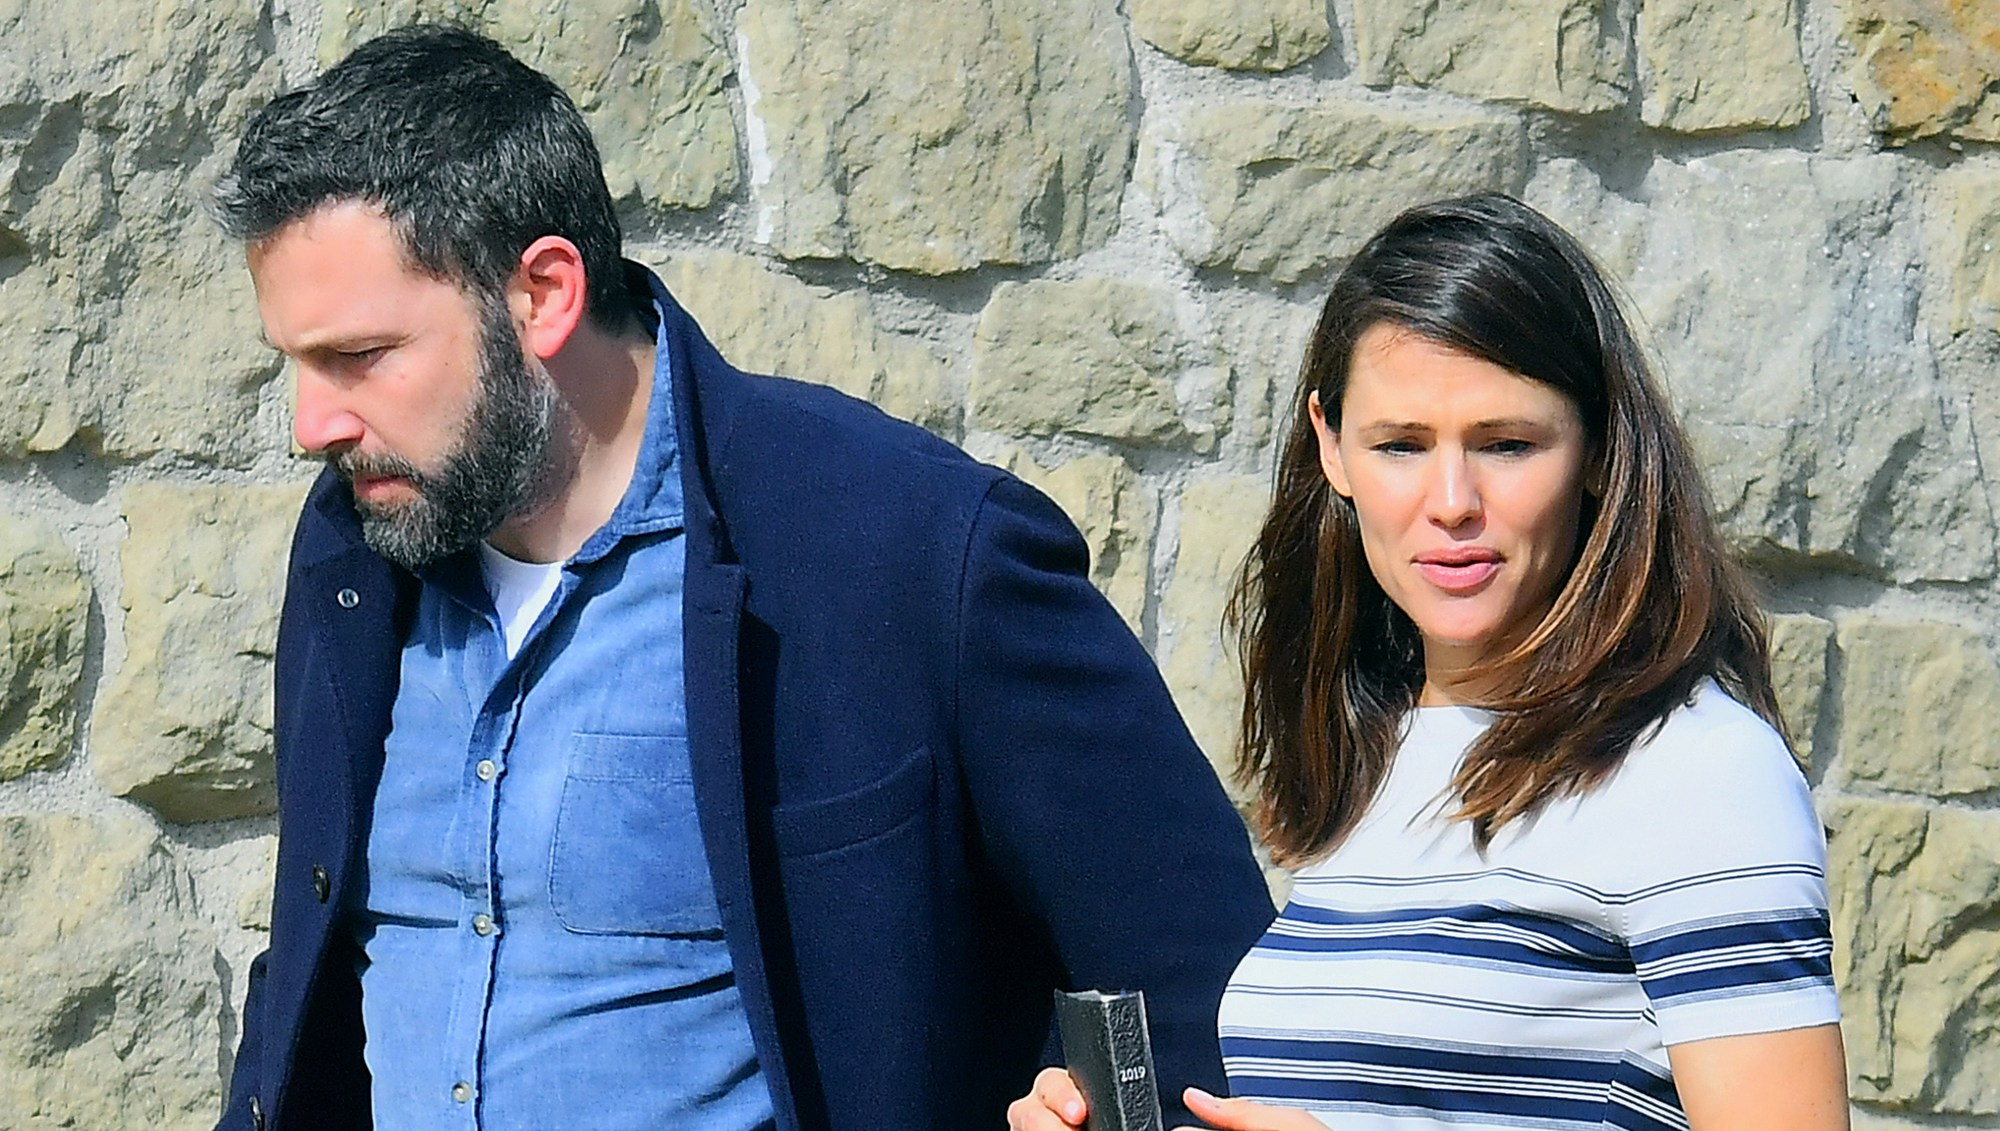 Ben Affleck and Jennifer Garner Reunite for Family Church Outing 2 Months After Finalizing Divorce